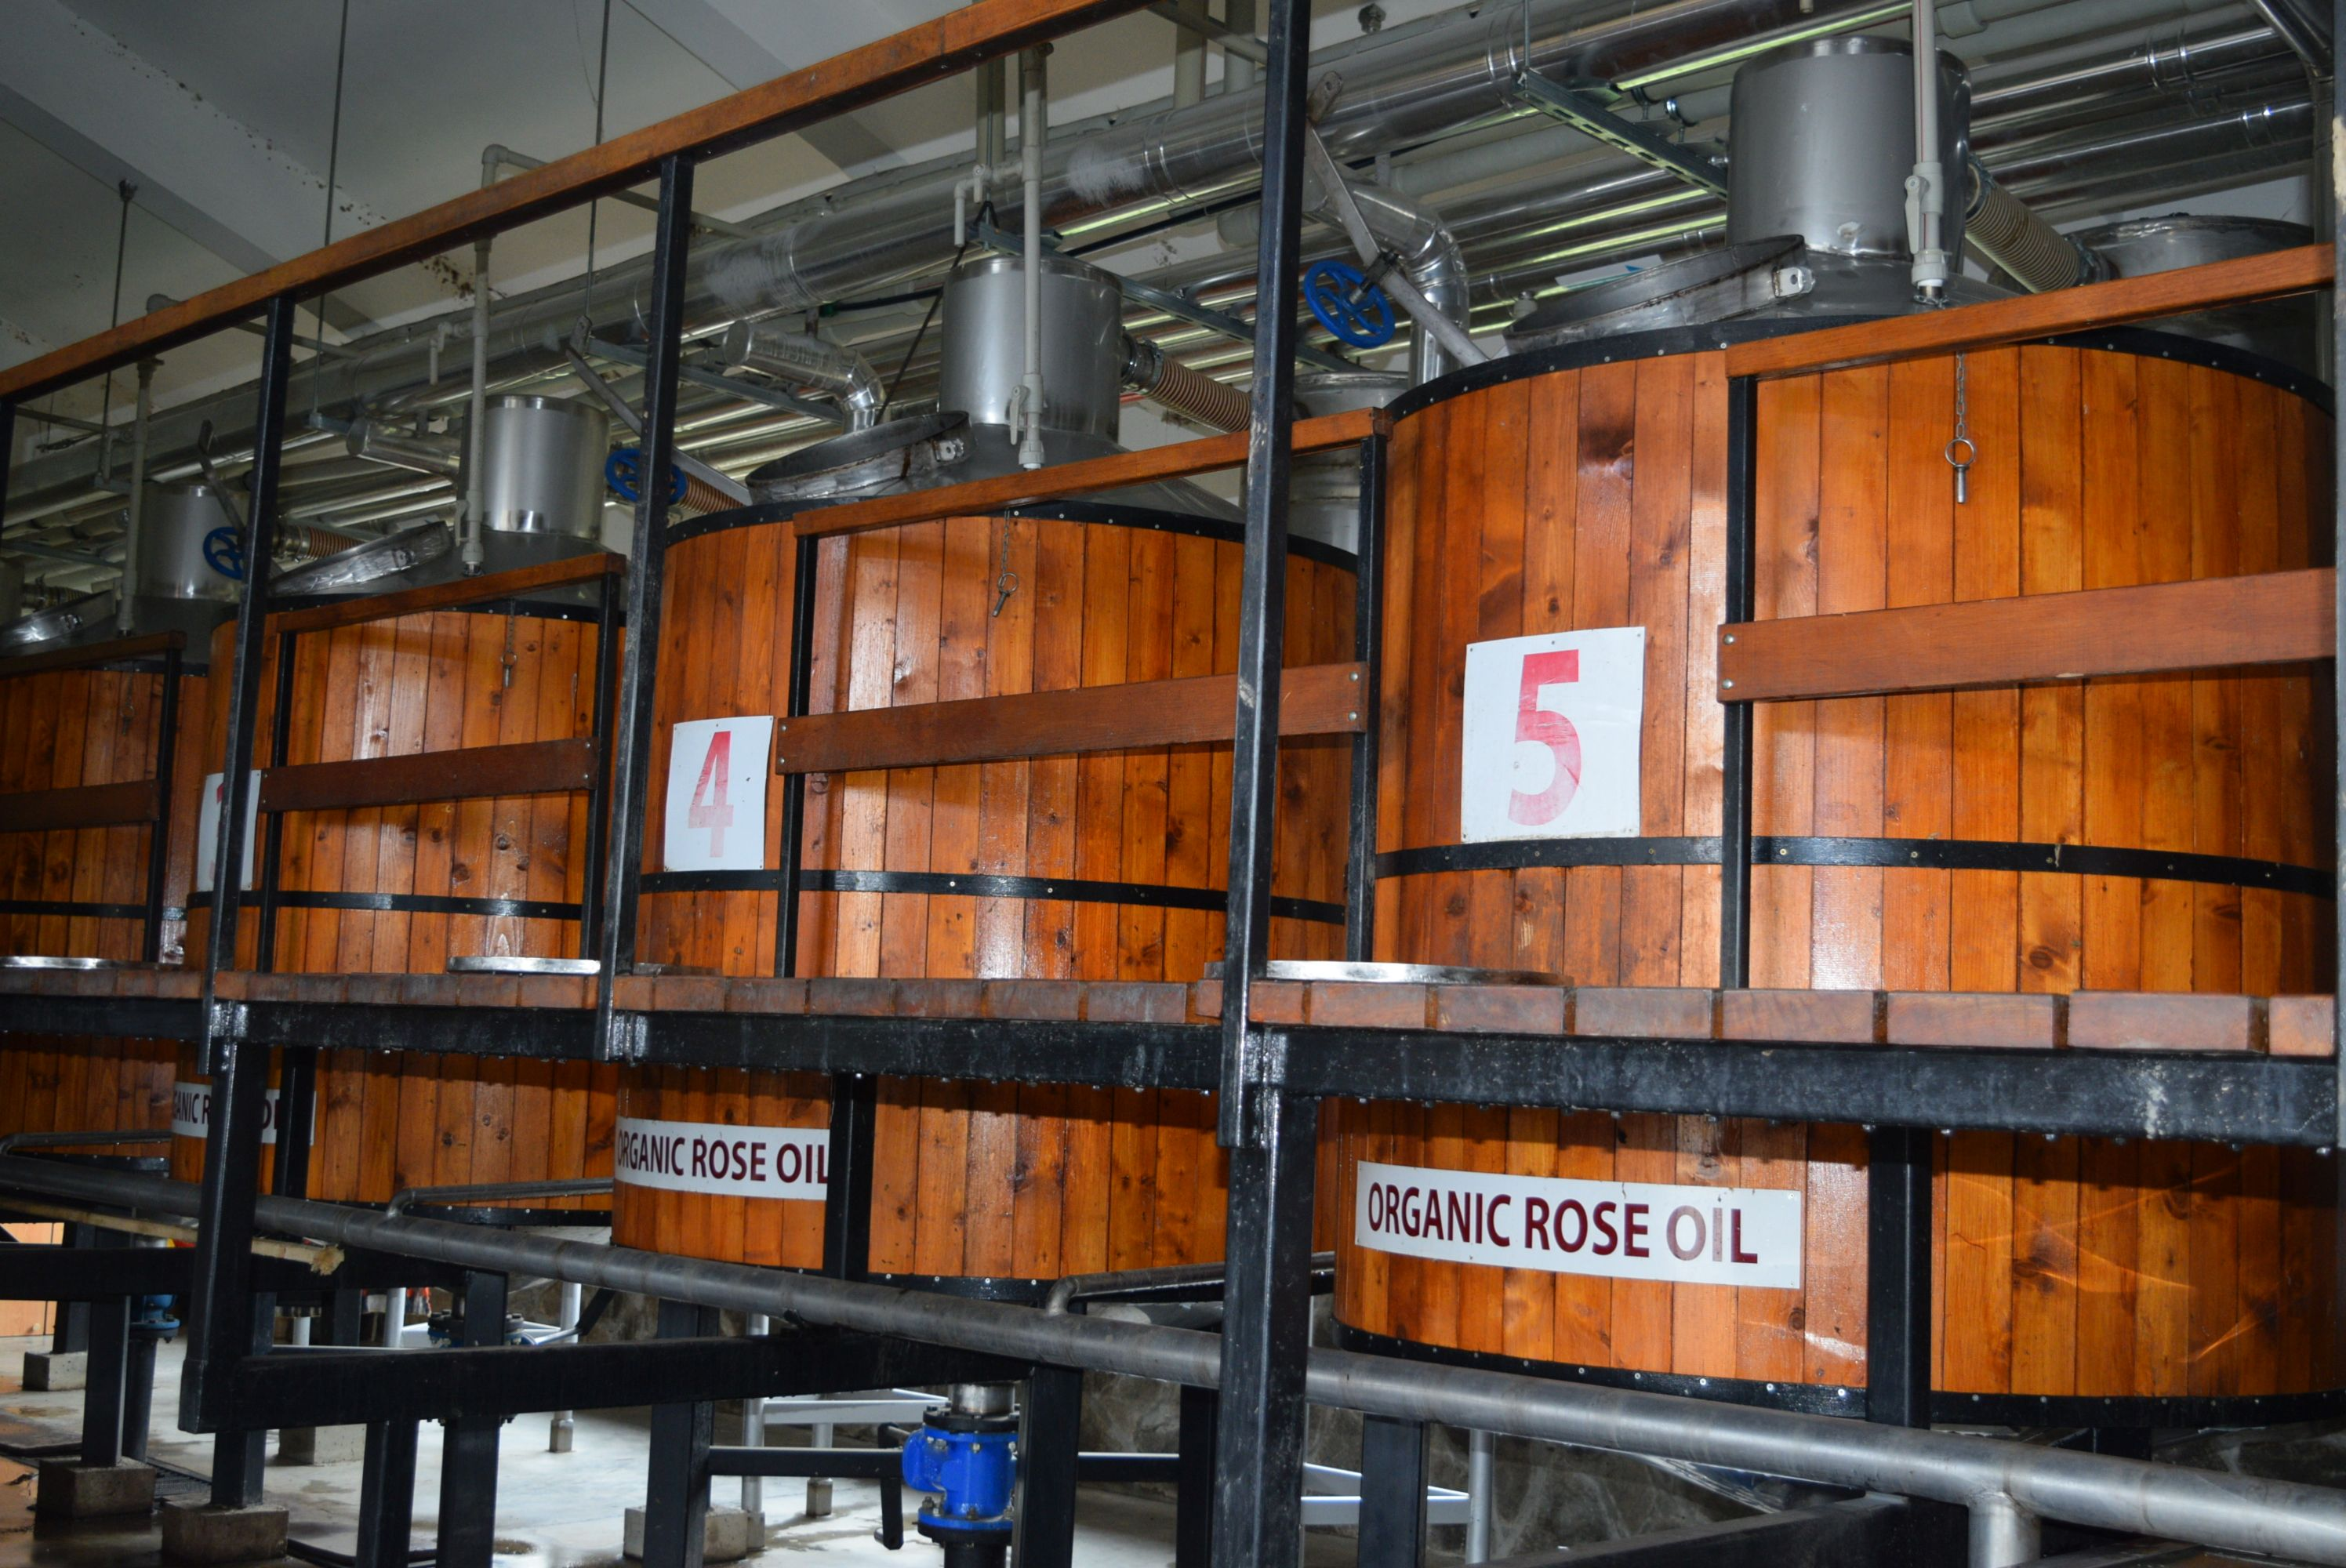 Rose oil production facilities